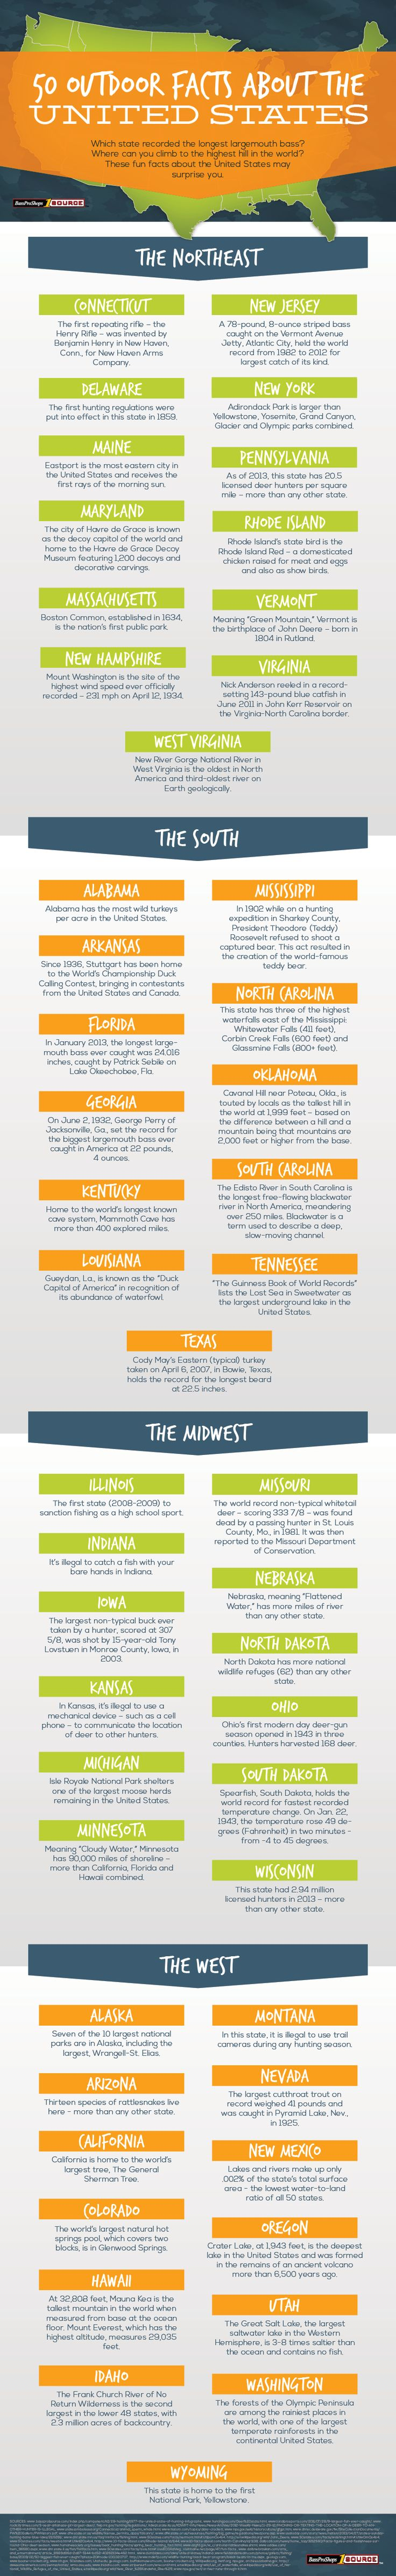 50 Fun & Interesting Outdoor Facts About The United States #infographic #basspro #1source